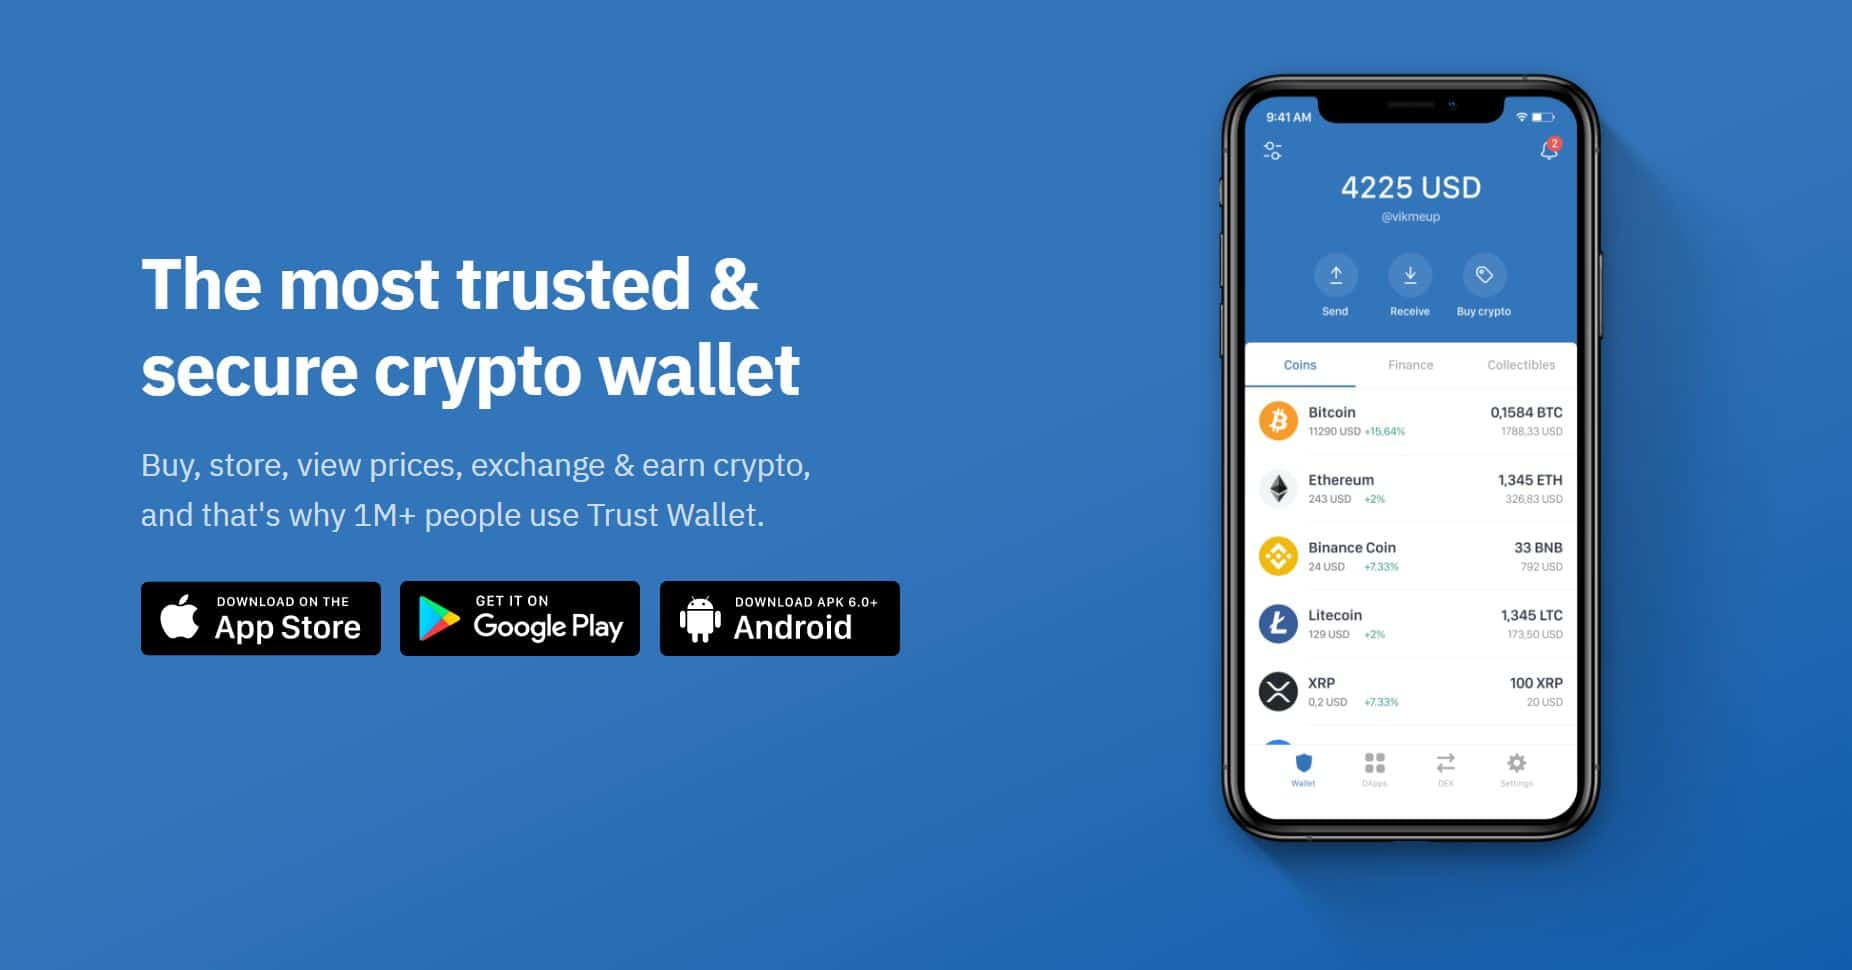 trust wallet is one of the most popular cryptocurrency wallets that allways crypto staking